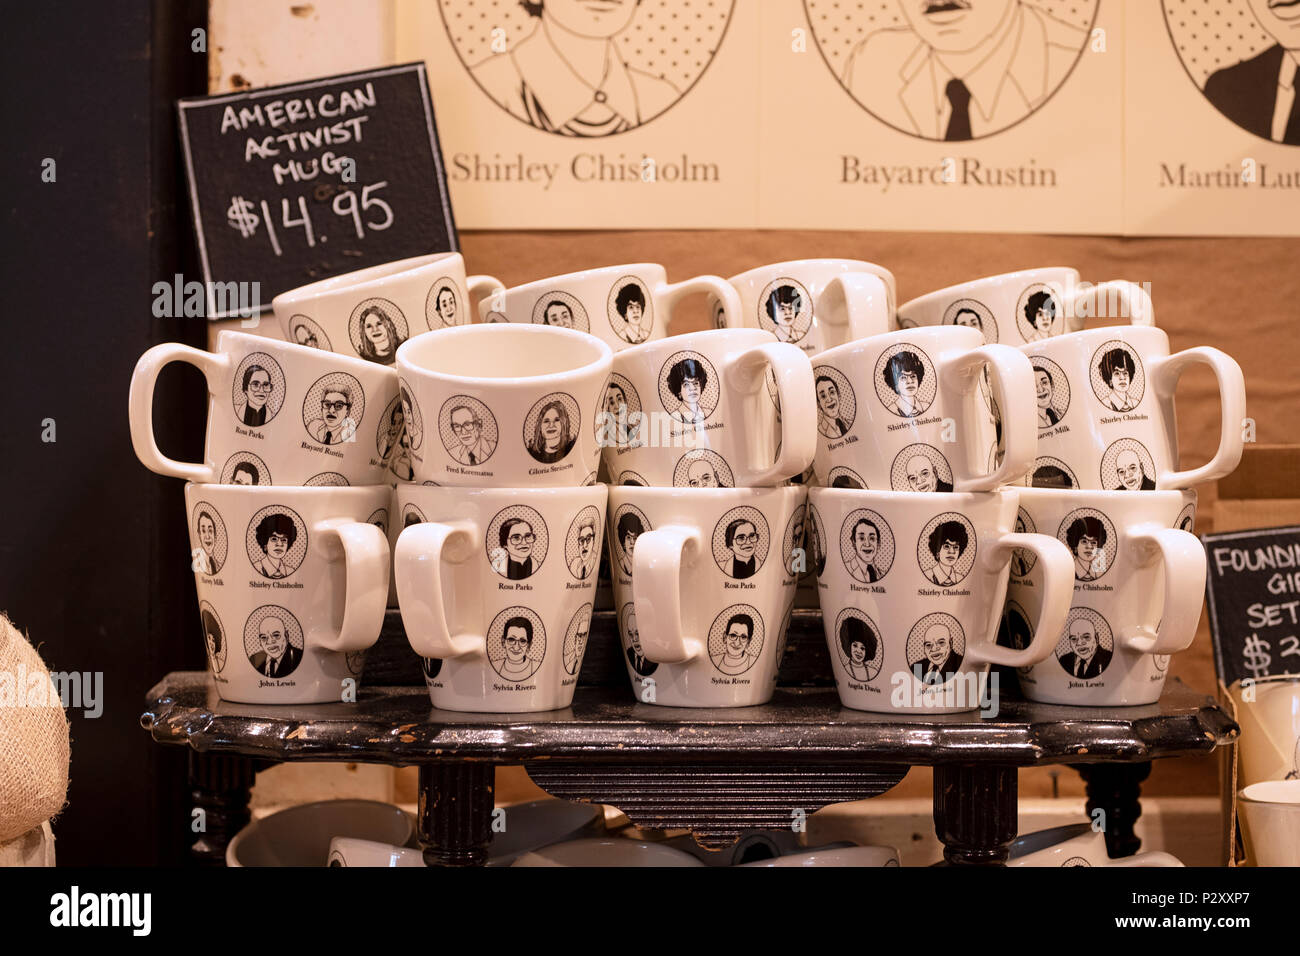 American Activist mugs for sale at Fish's Eddy in lower Manhattan, New York City. - Stock Image